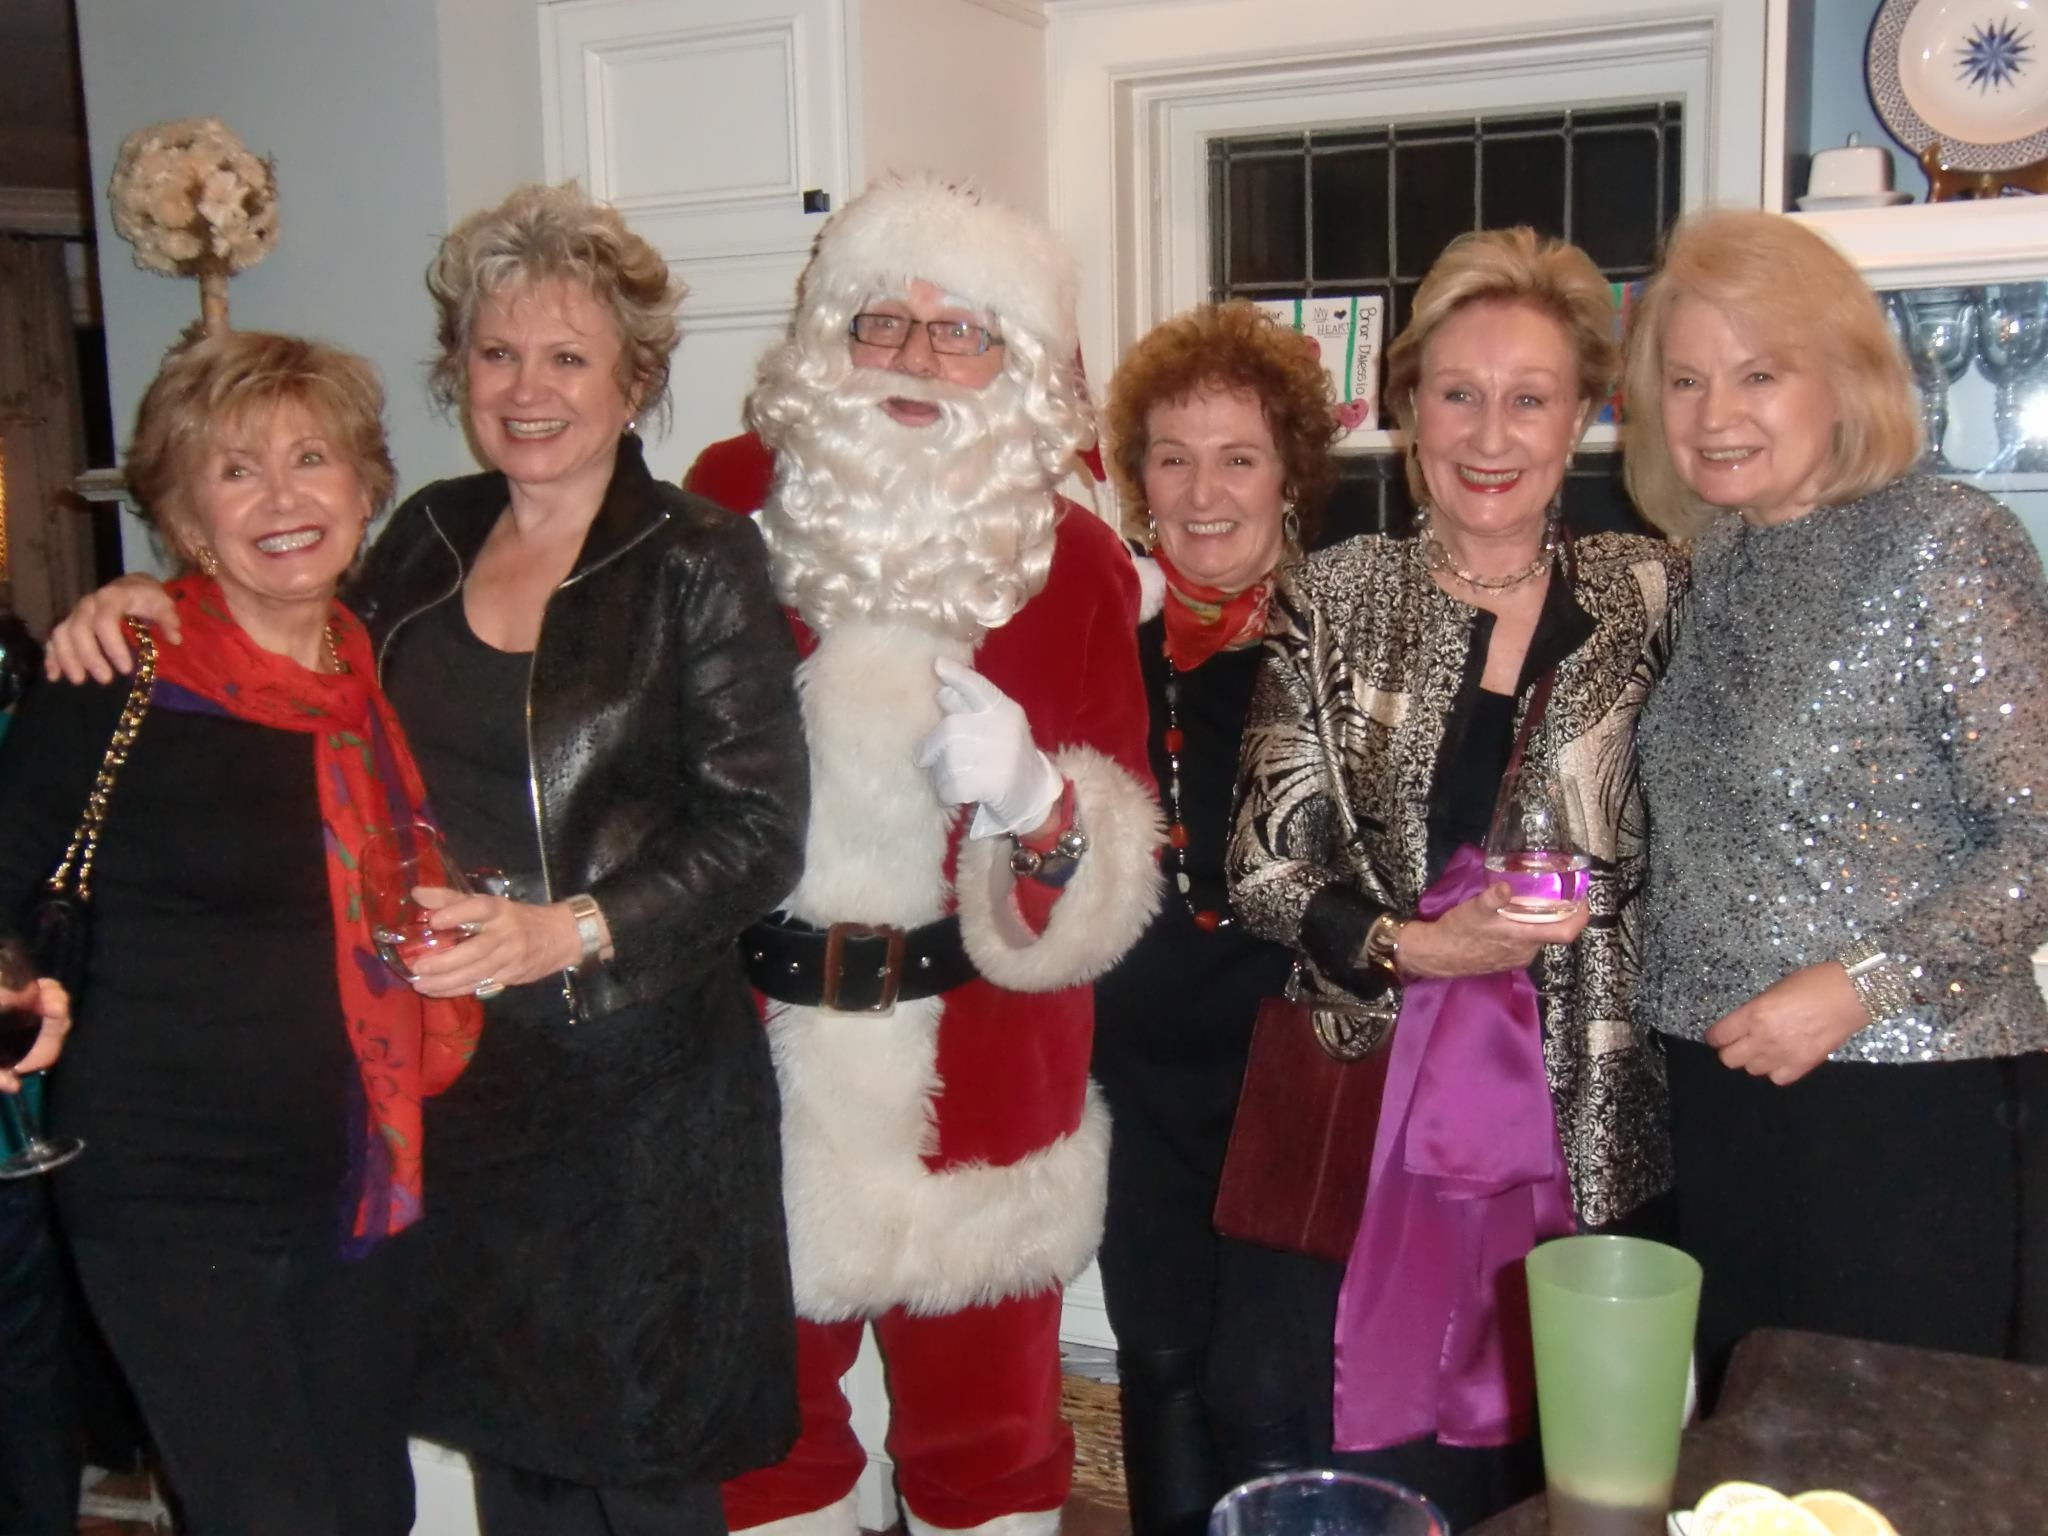 Elena (far right) and her posé...and of course Santa